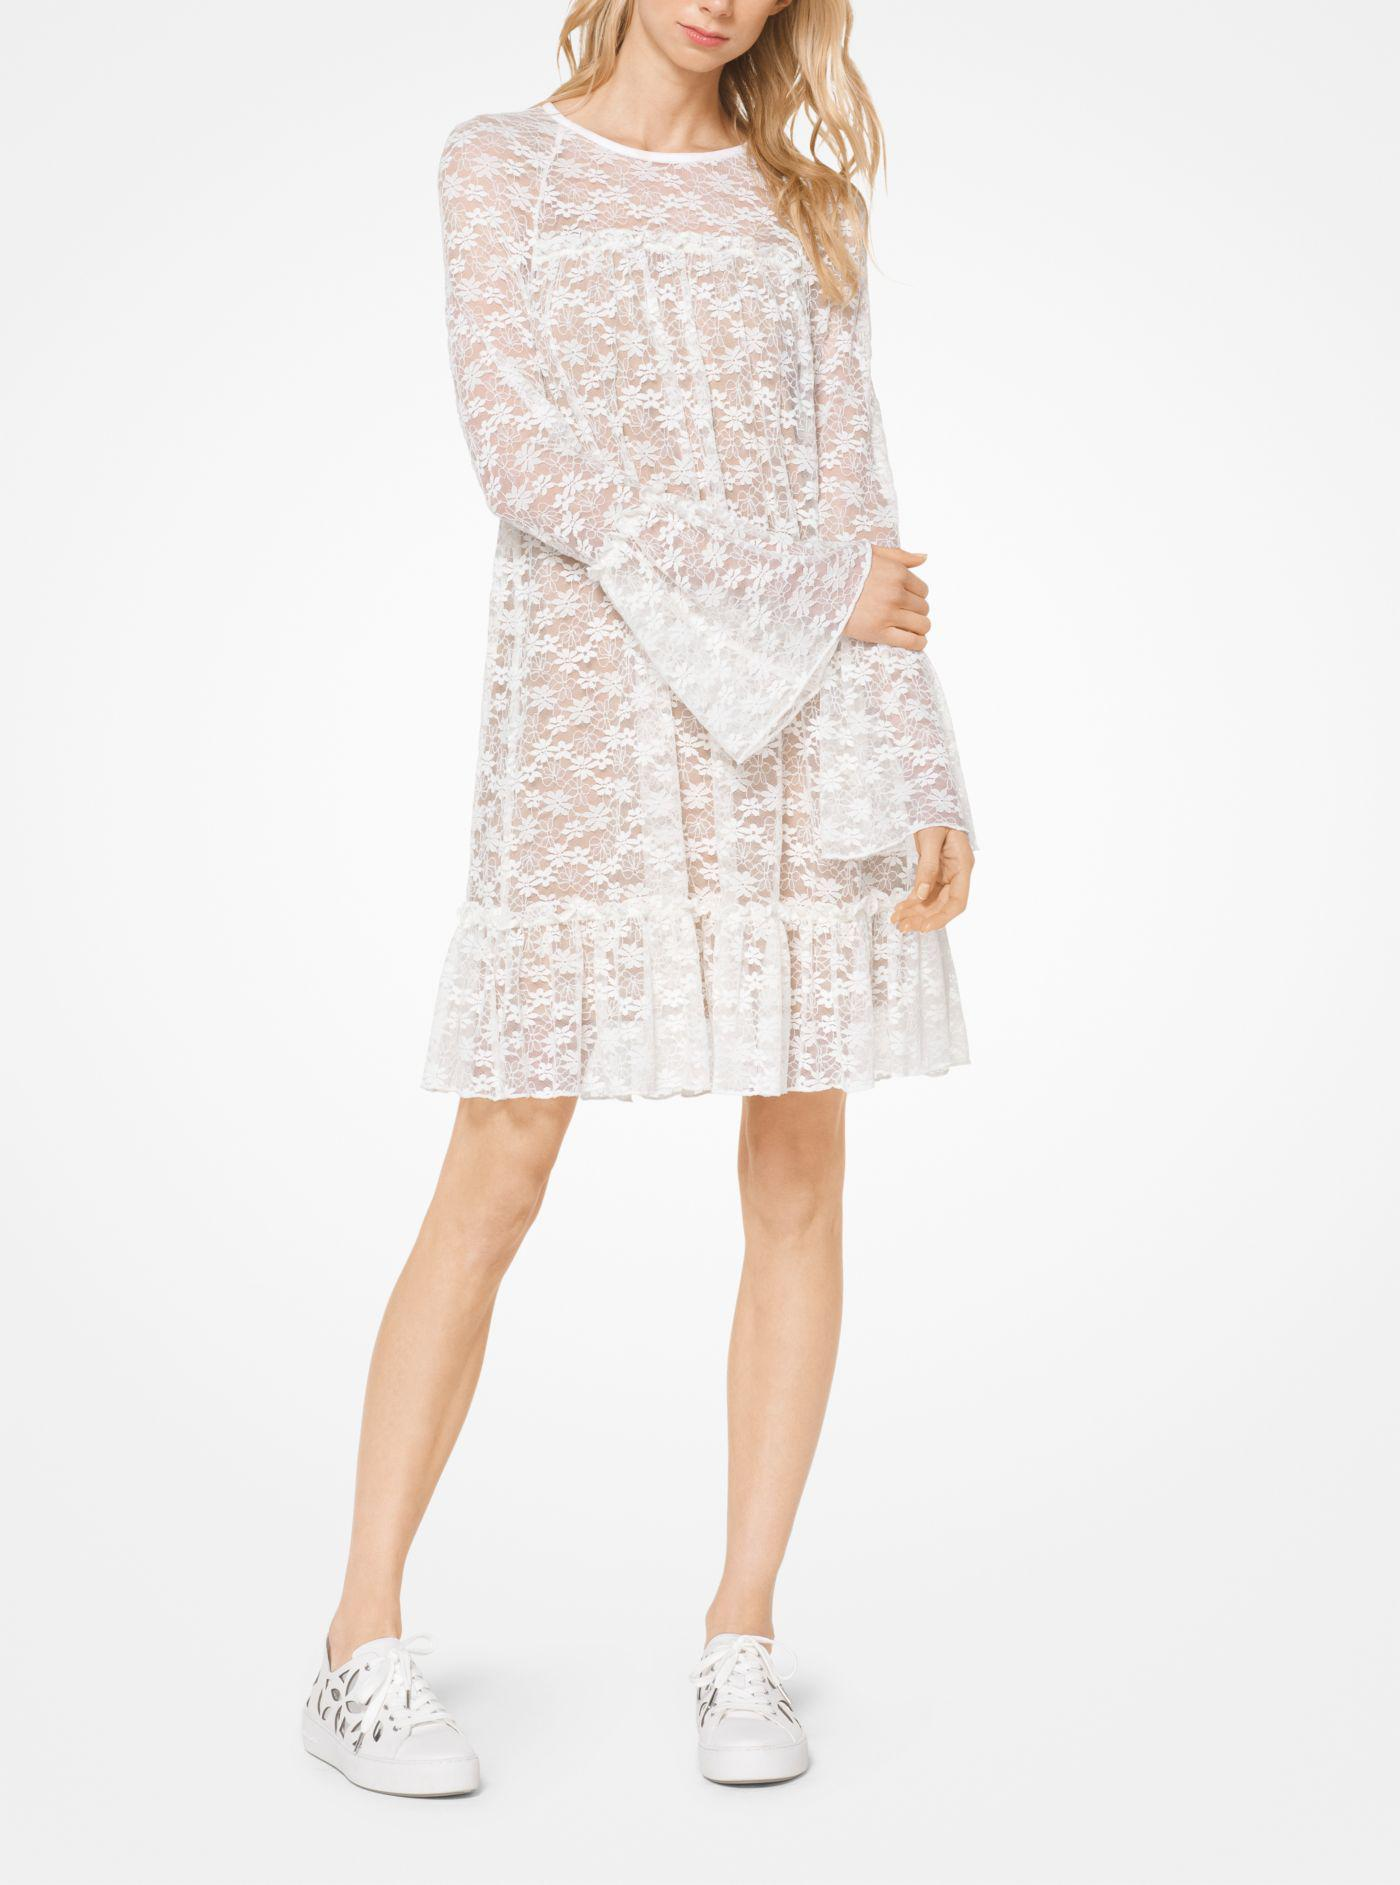 5a51532910d Lyst - Michael Kors Floral Lace Dress in White